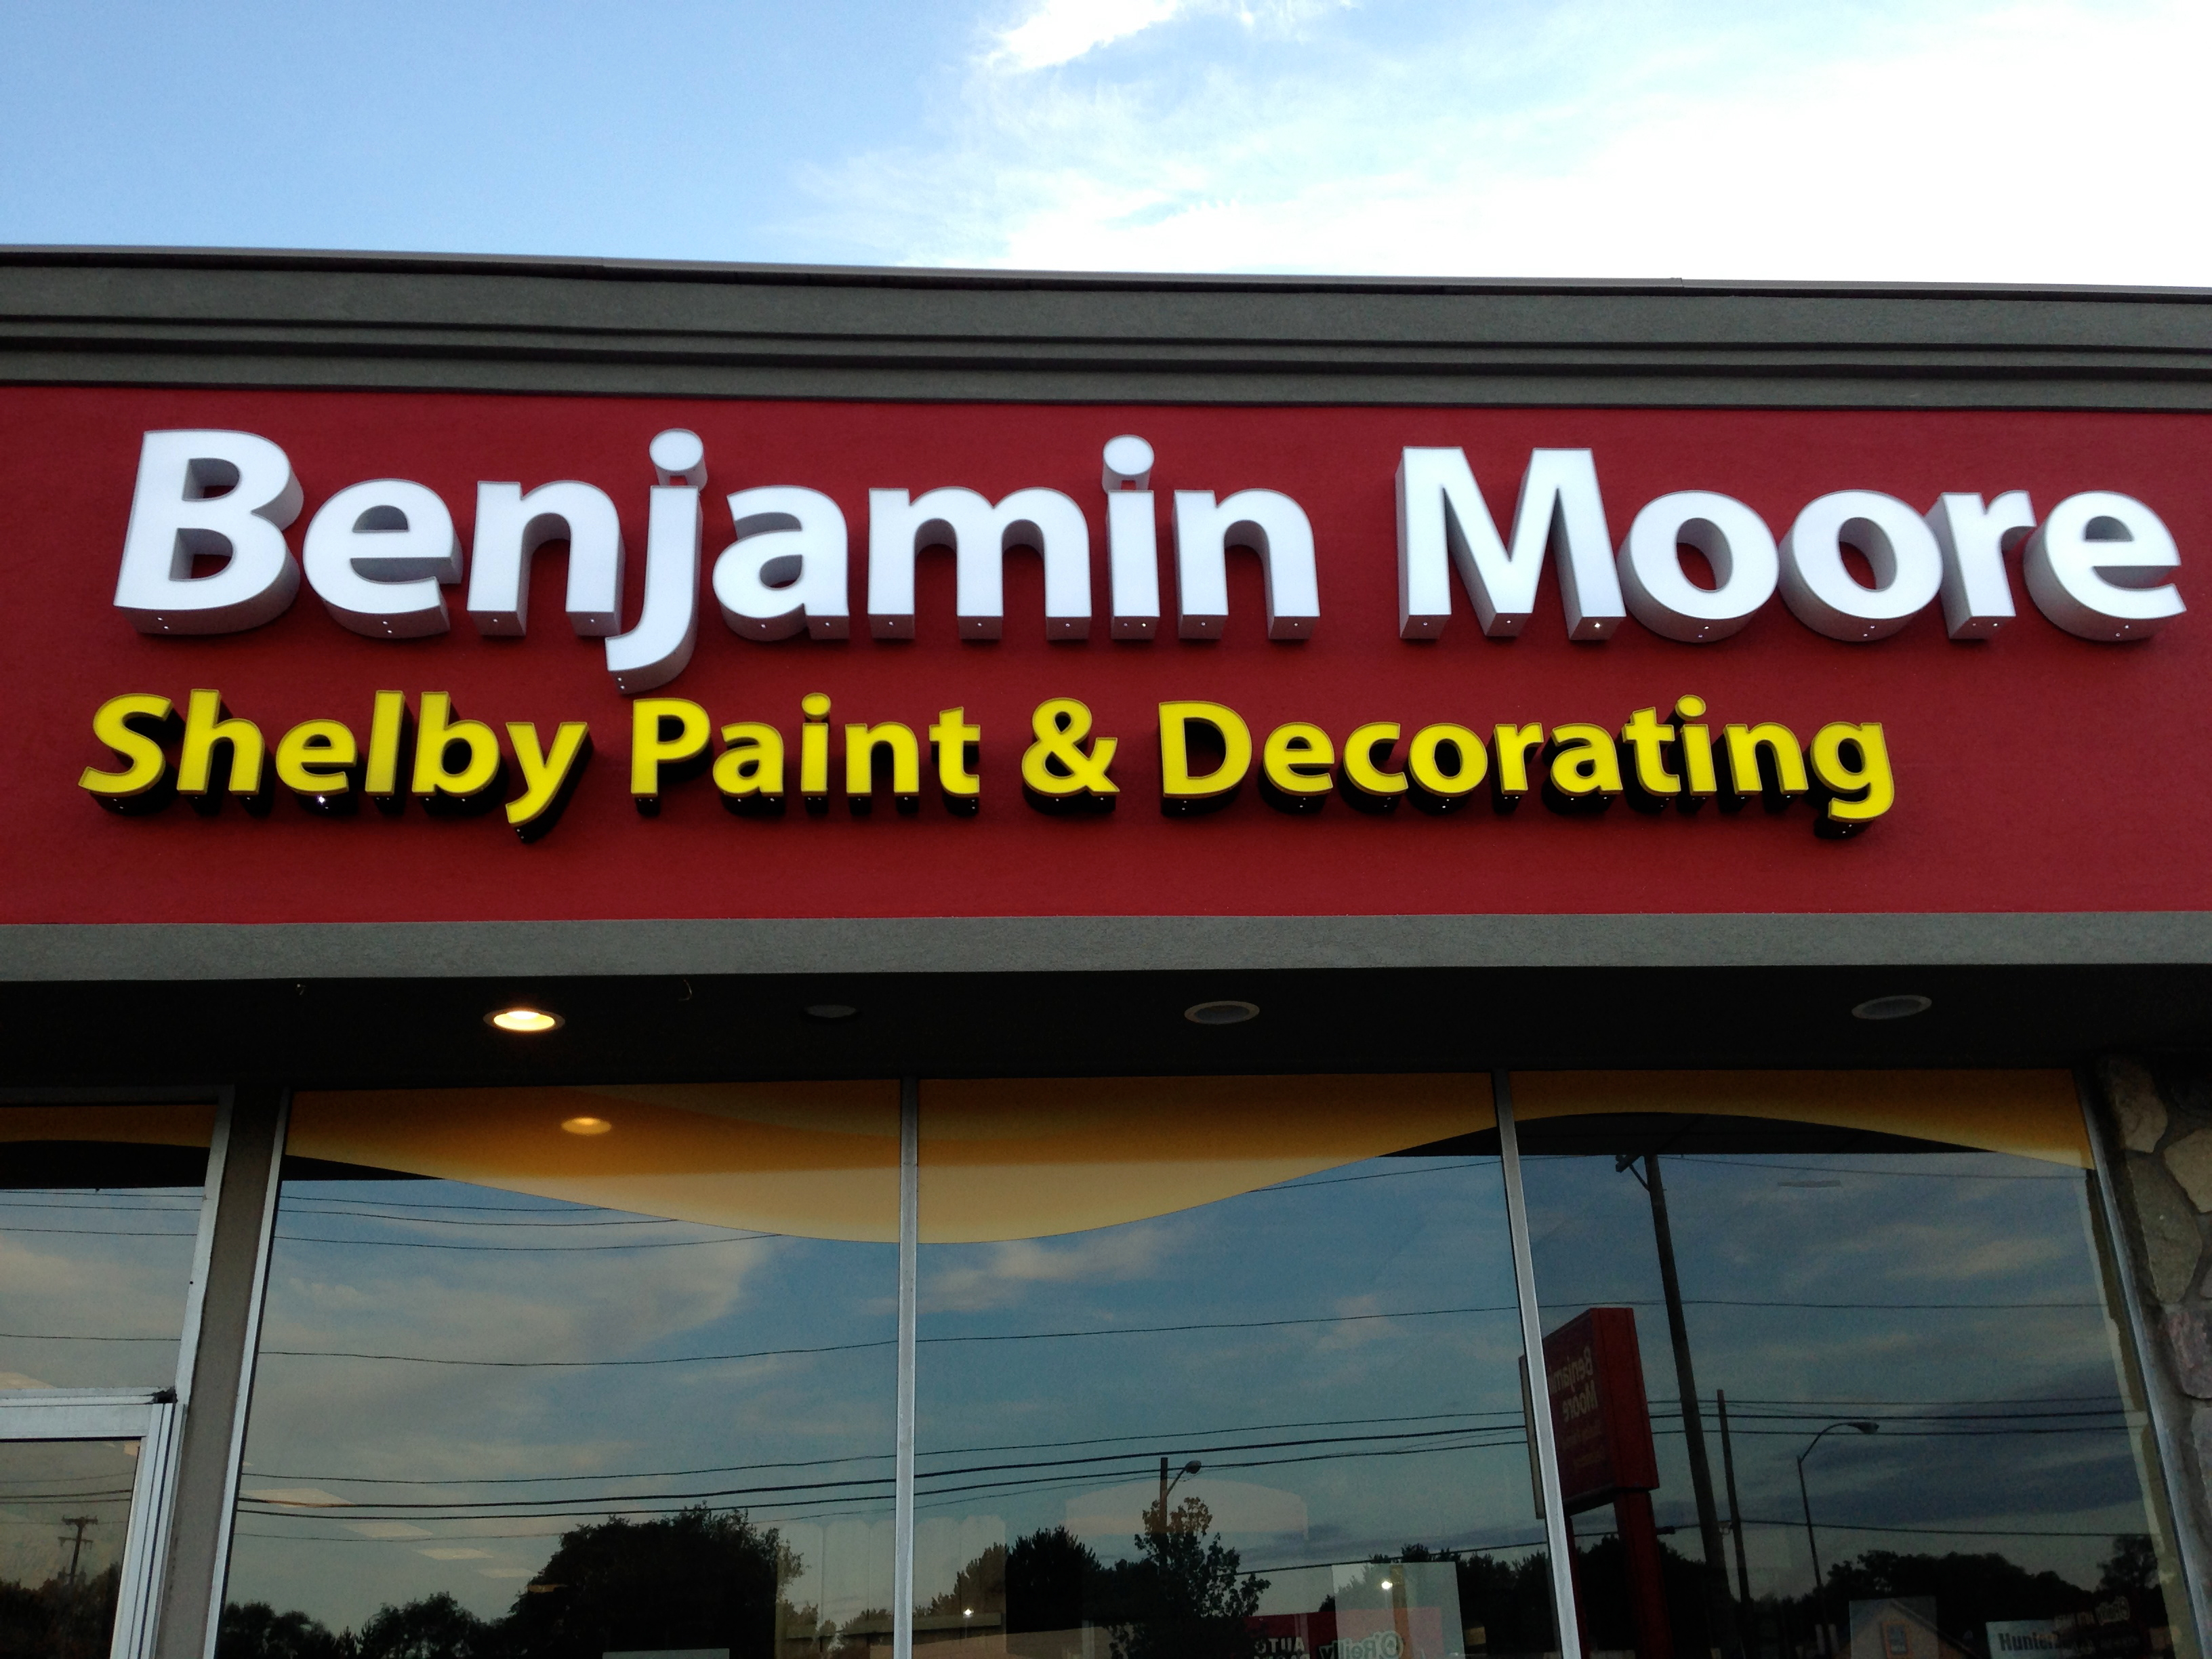 Shelby paint decorating motor city paint coupons near for Benjamin moore paint store san francisco